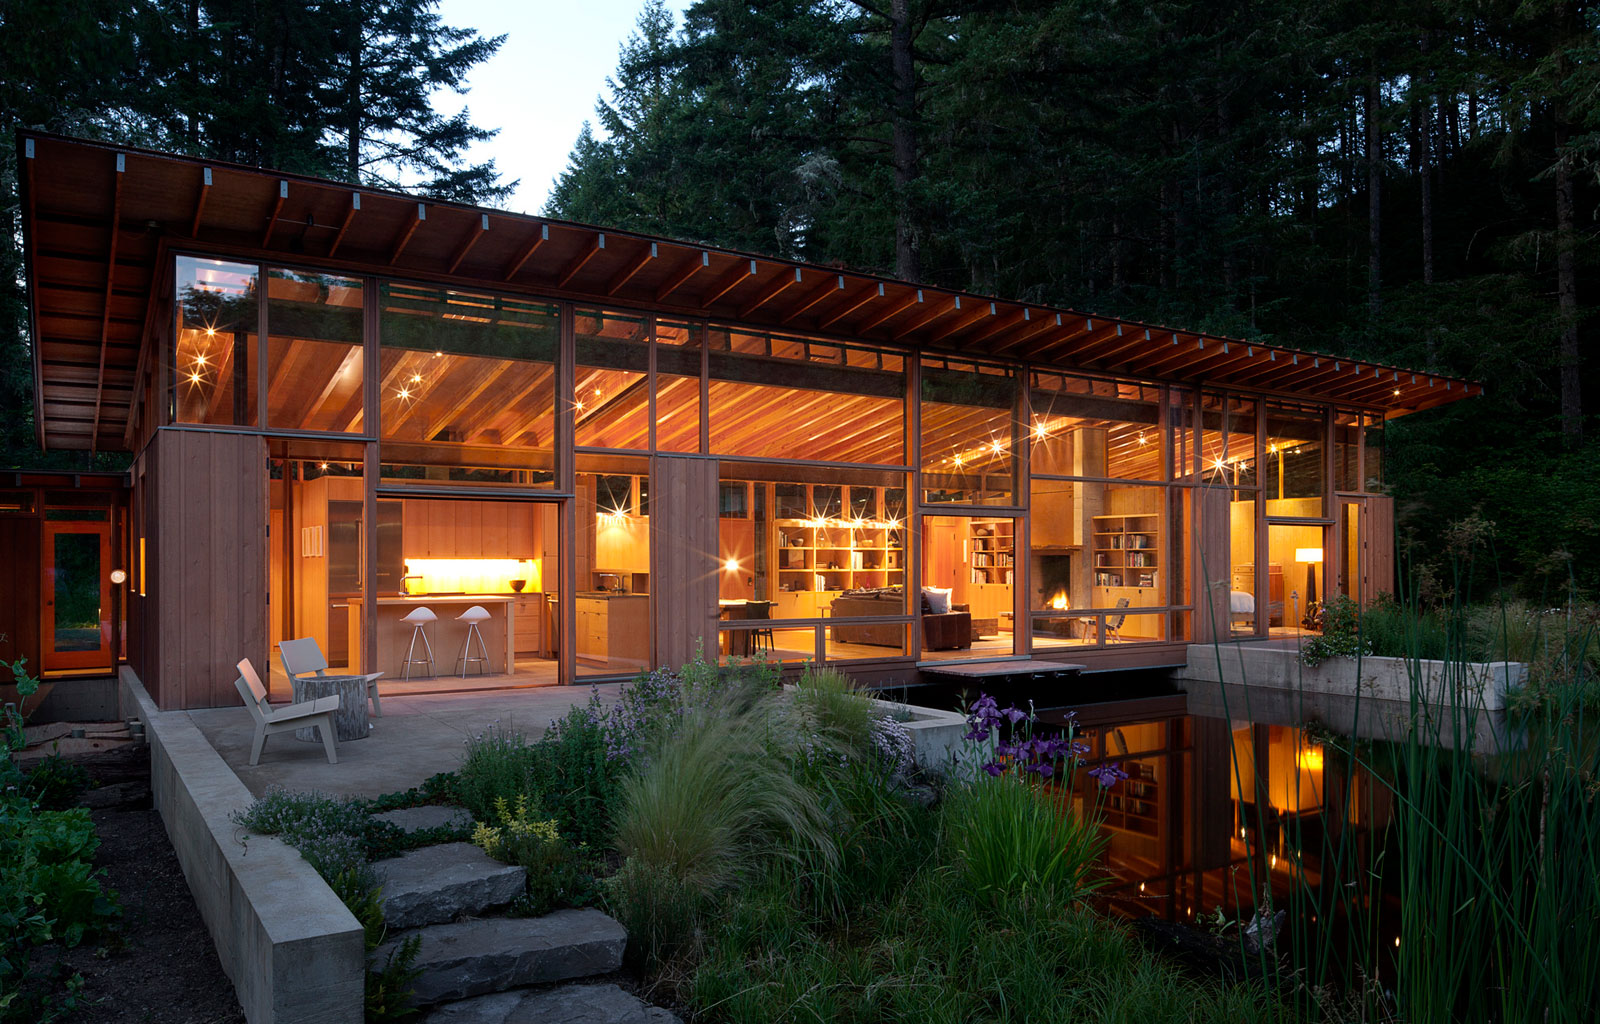 Cutler Anderson Architect Designs a Single-Family Home in Oregon